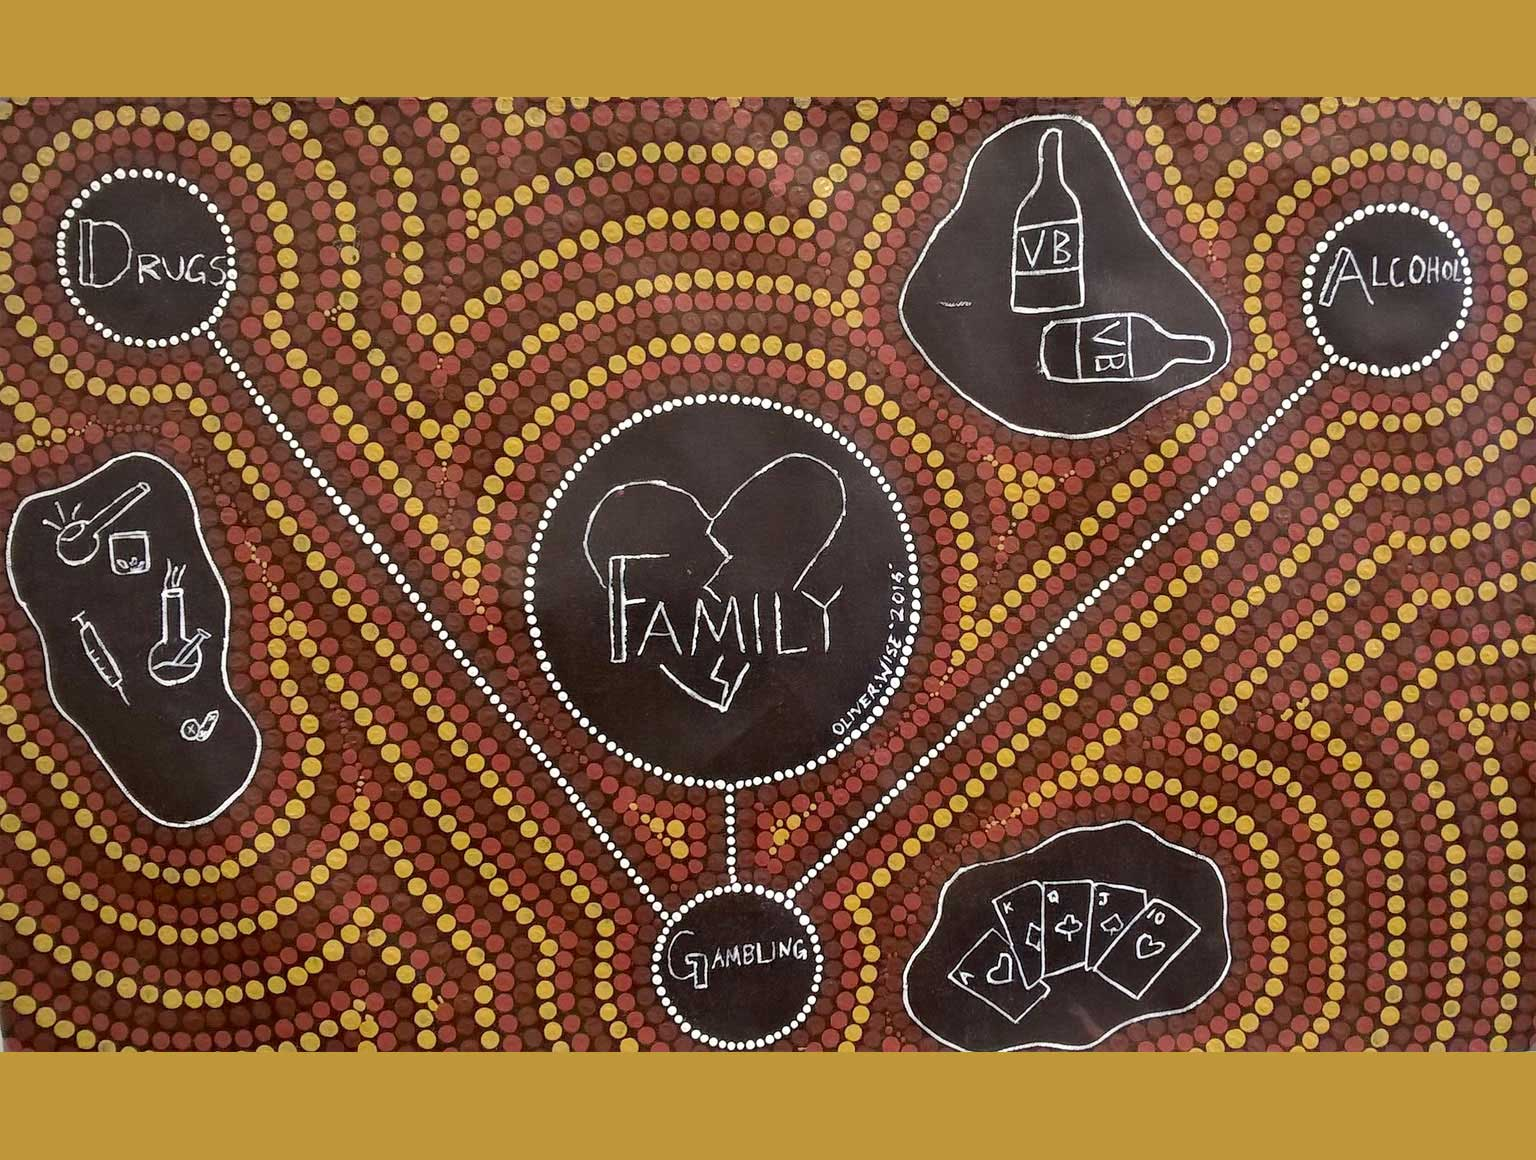 Aboriginal artwork with a flowchart drawing of a diagram with the word